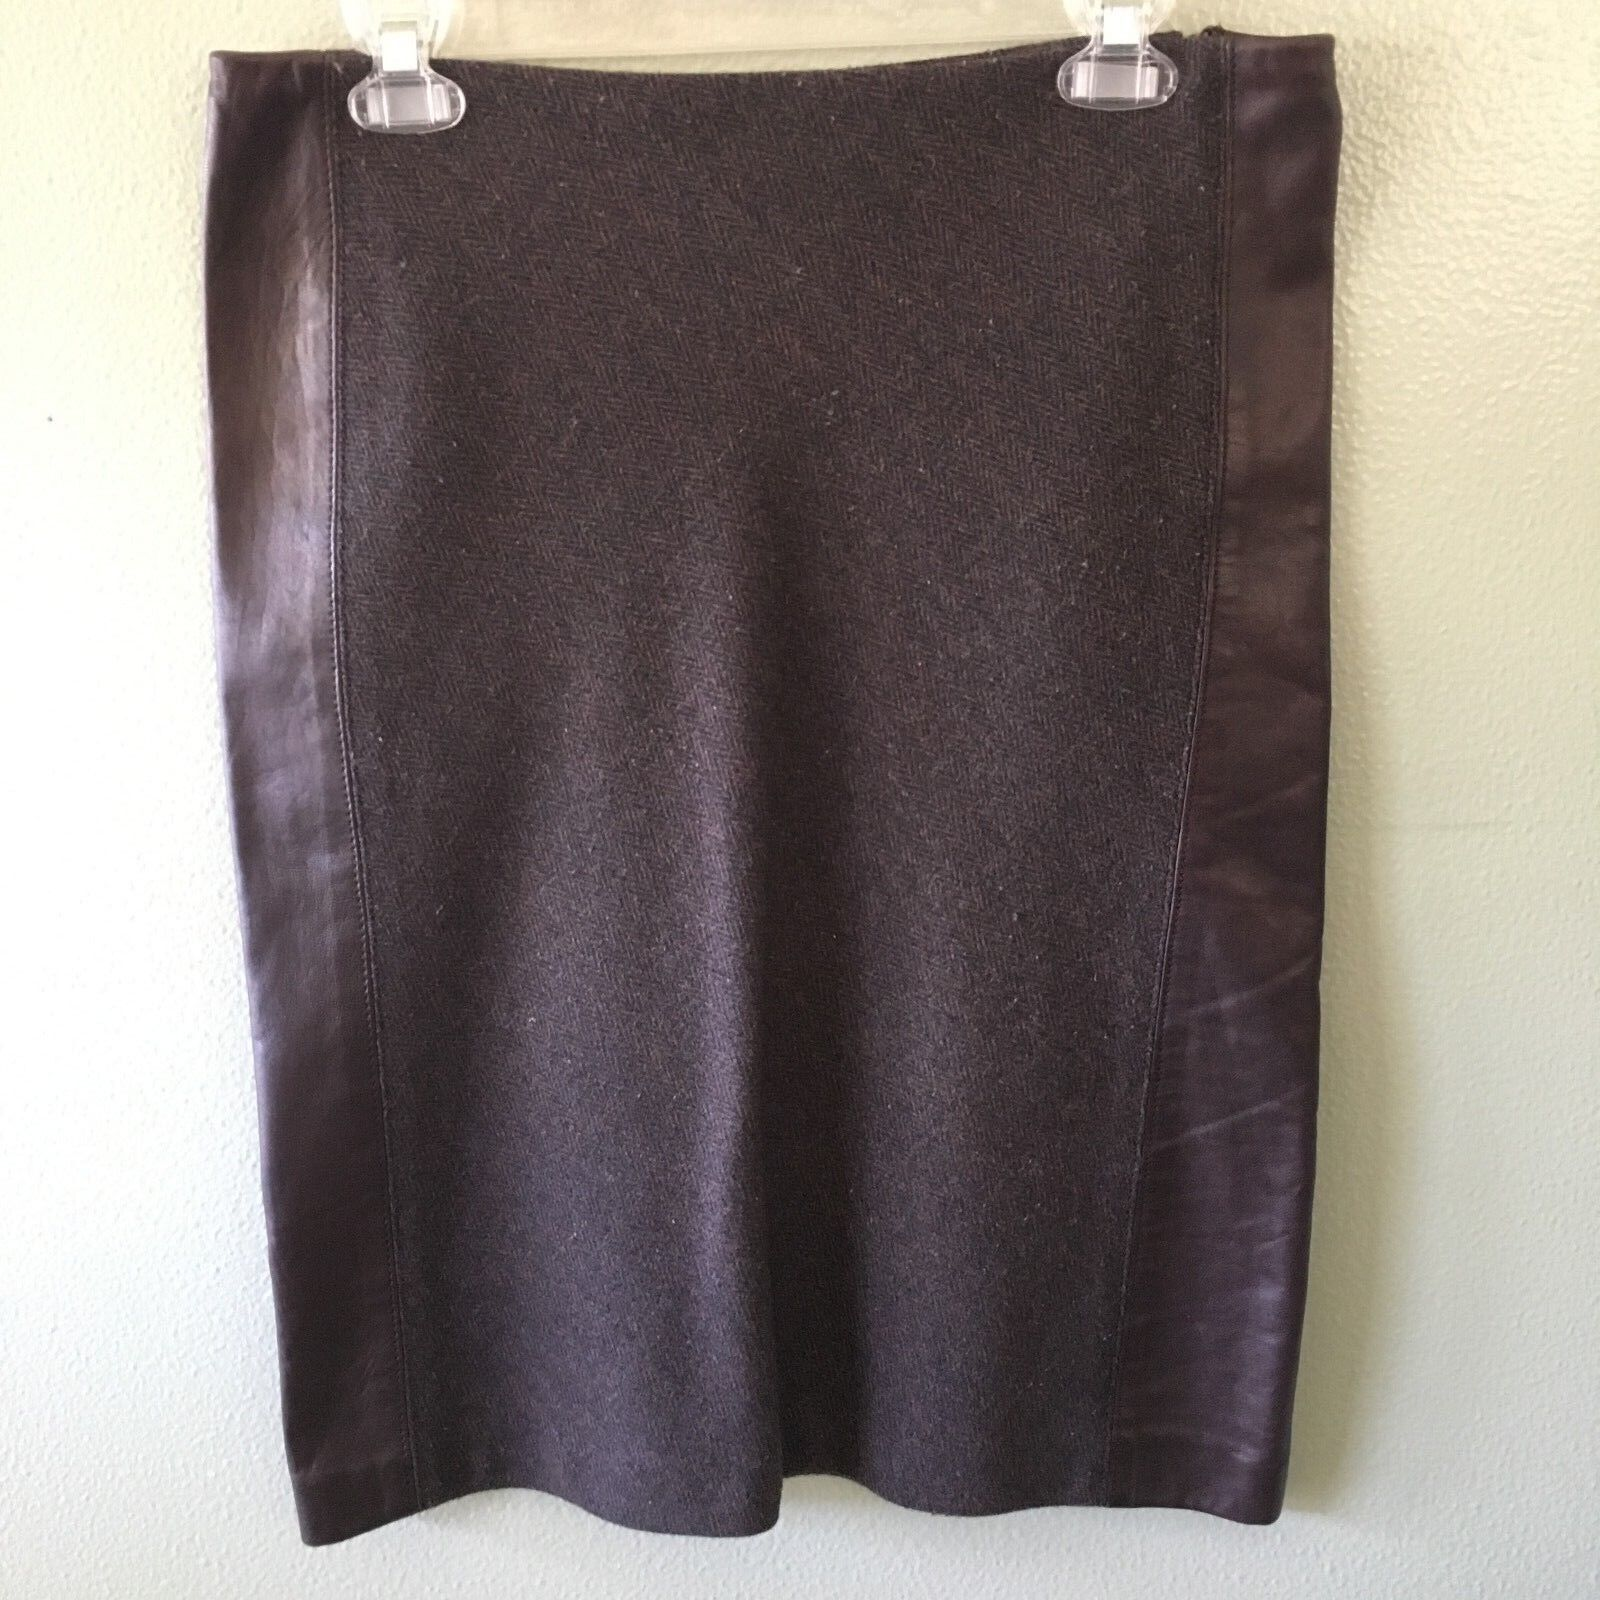 Dkny skirt 4 brown tweed faux leather wool pencil - size 4